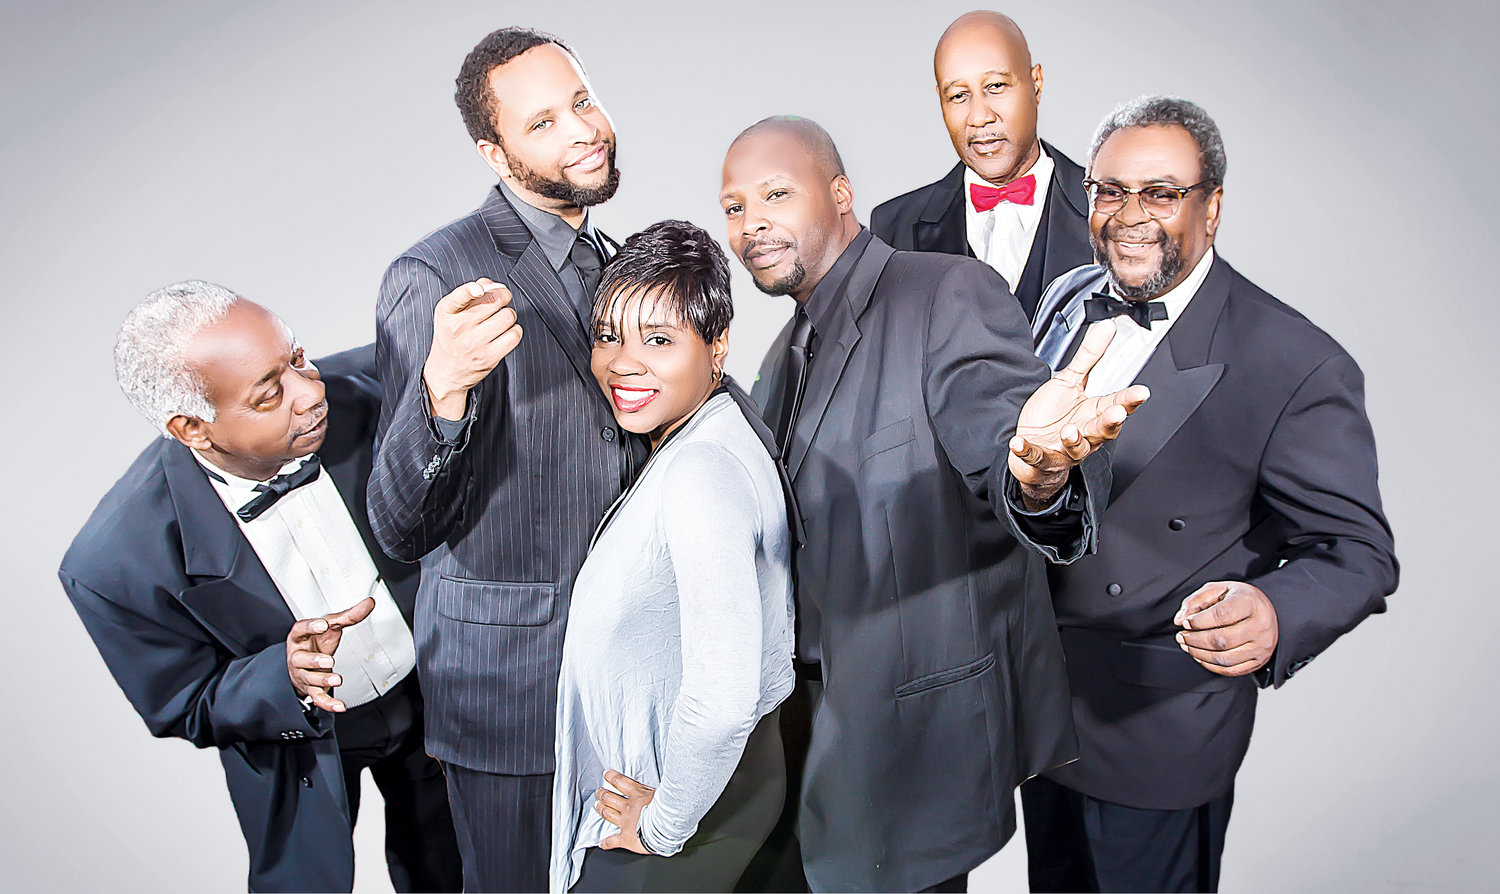 The six-piece band Charlie, will give a free concert at 6 p.m. Saturday in Depot Square in Angier. The band specializes in Motown and beach music, but also performs a variety of sounds to get the crowd on its feet dancing.